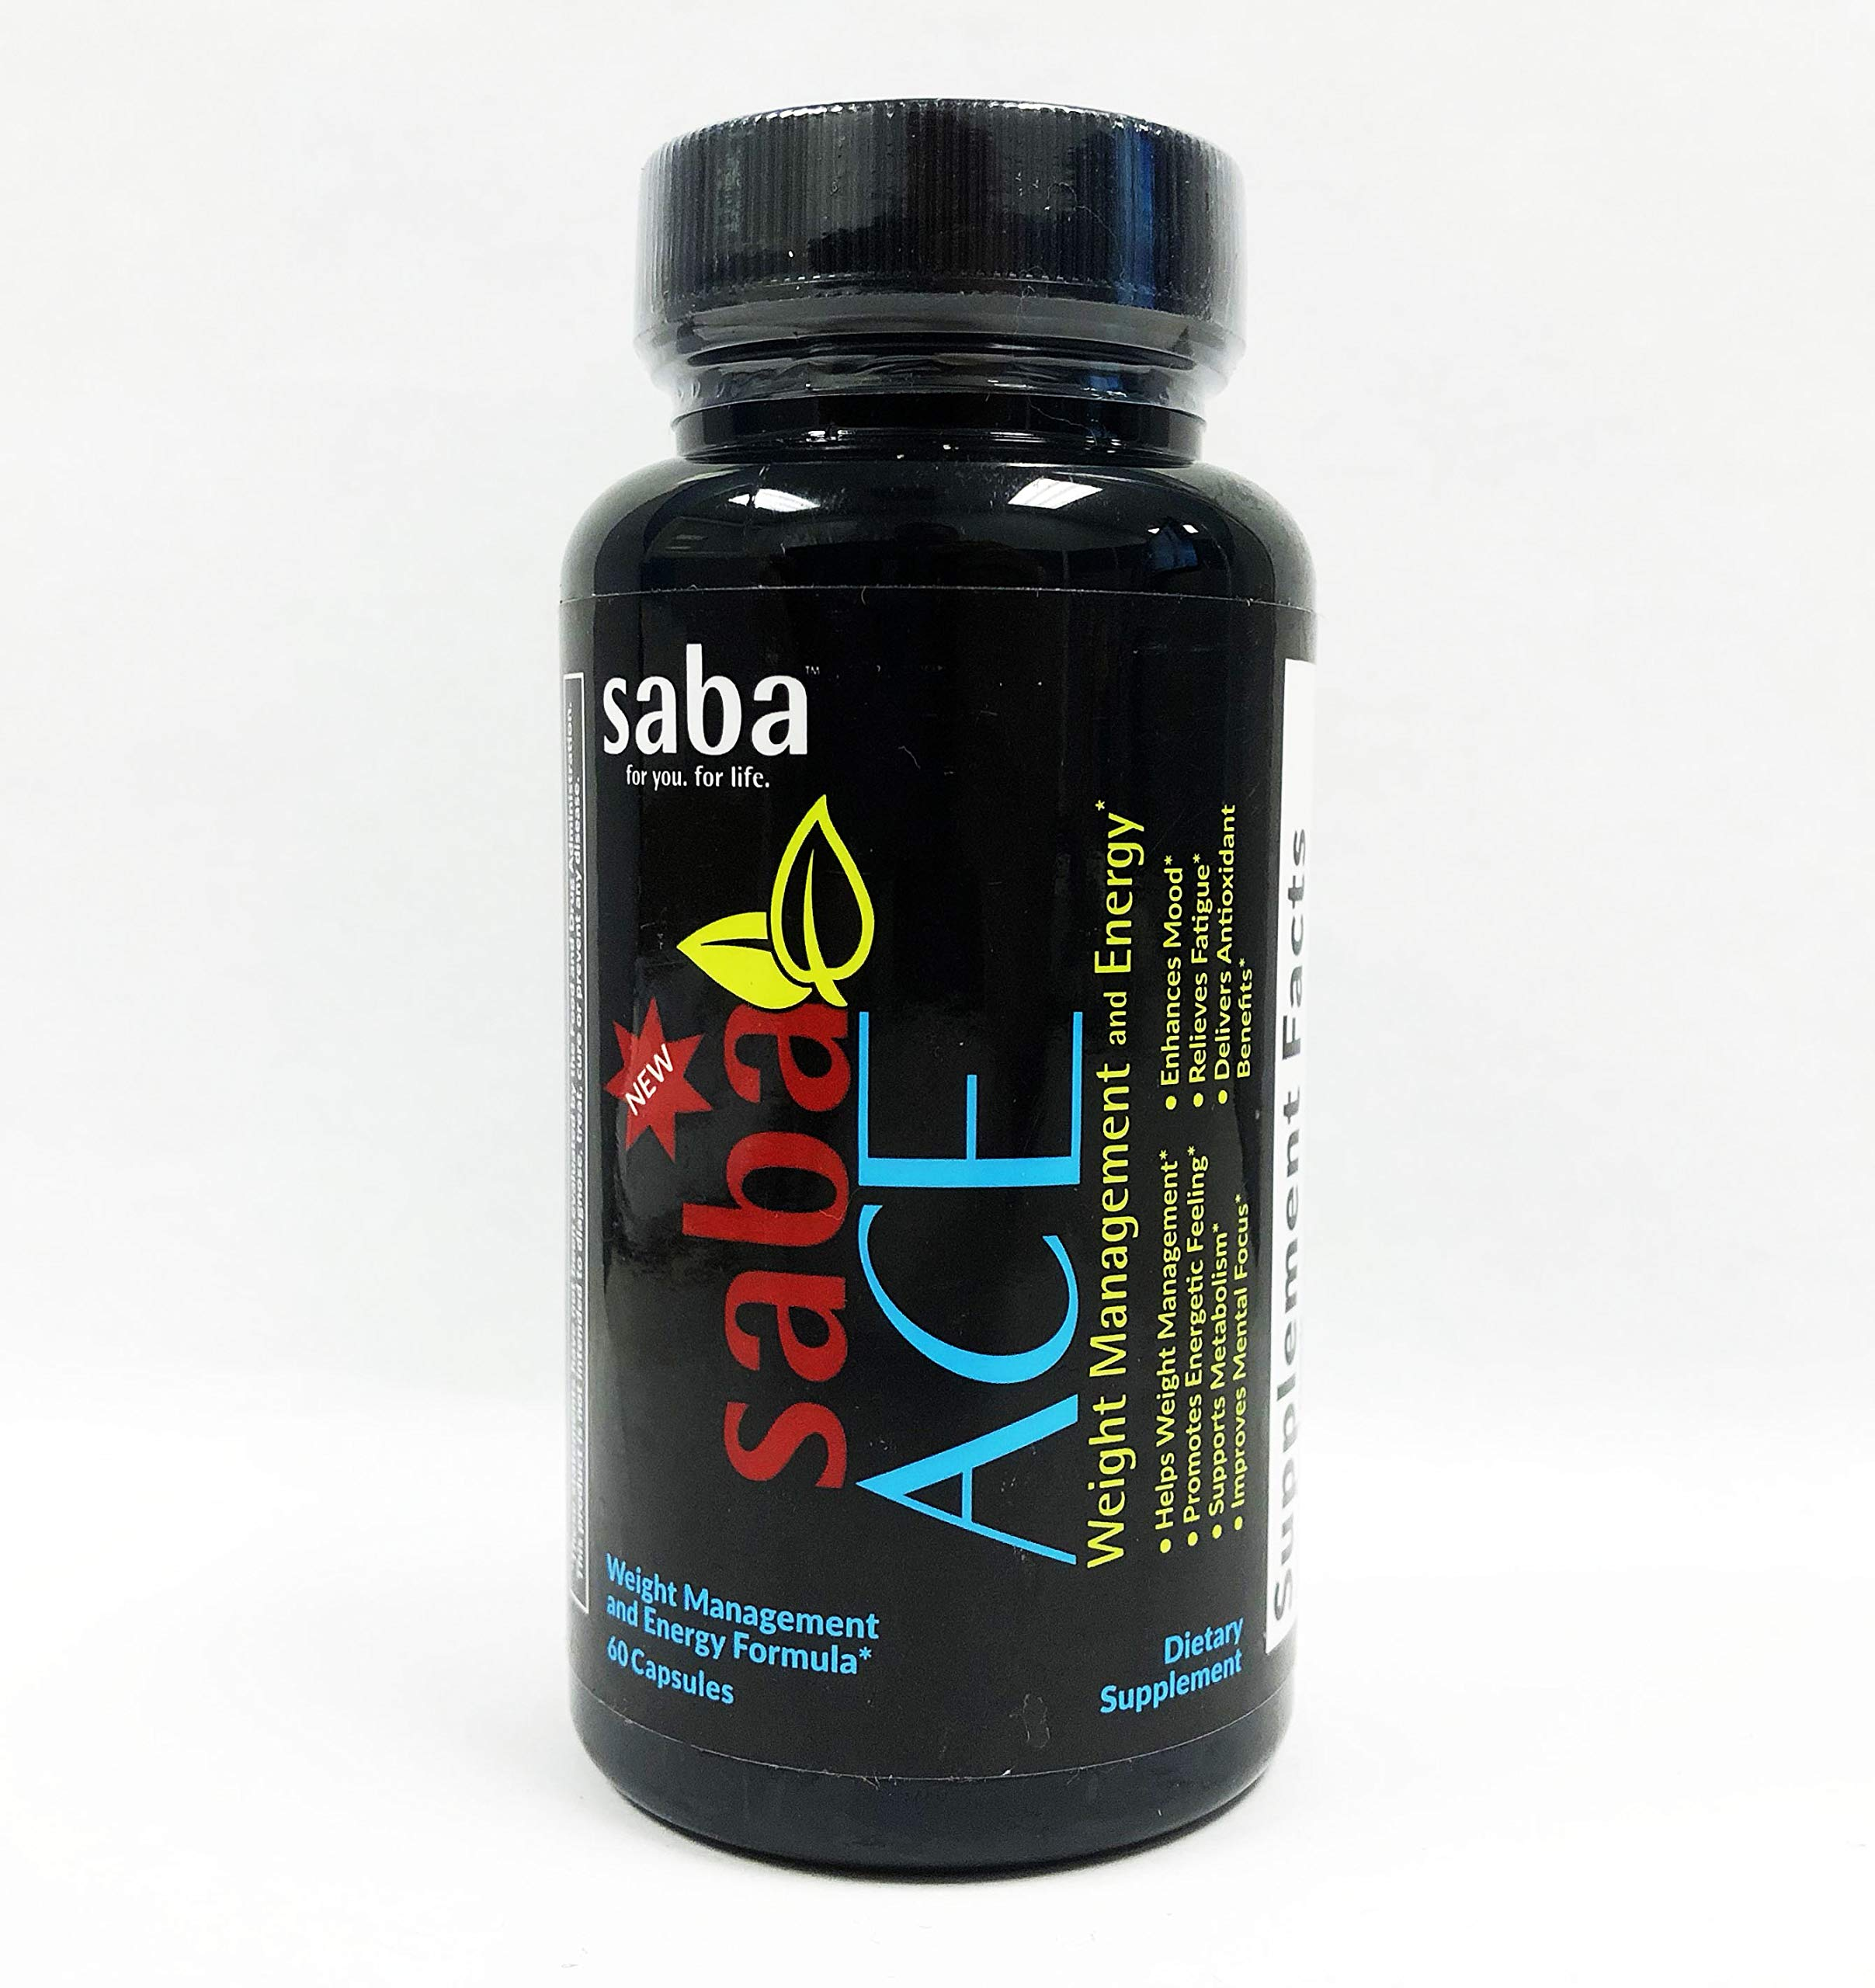 Saba Appetite Control and Energy DMAA Free Dietary Supplement, 60 Capsules by ACE SABA